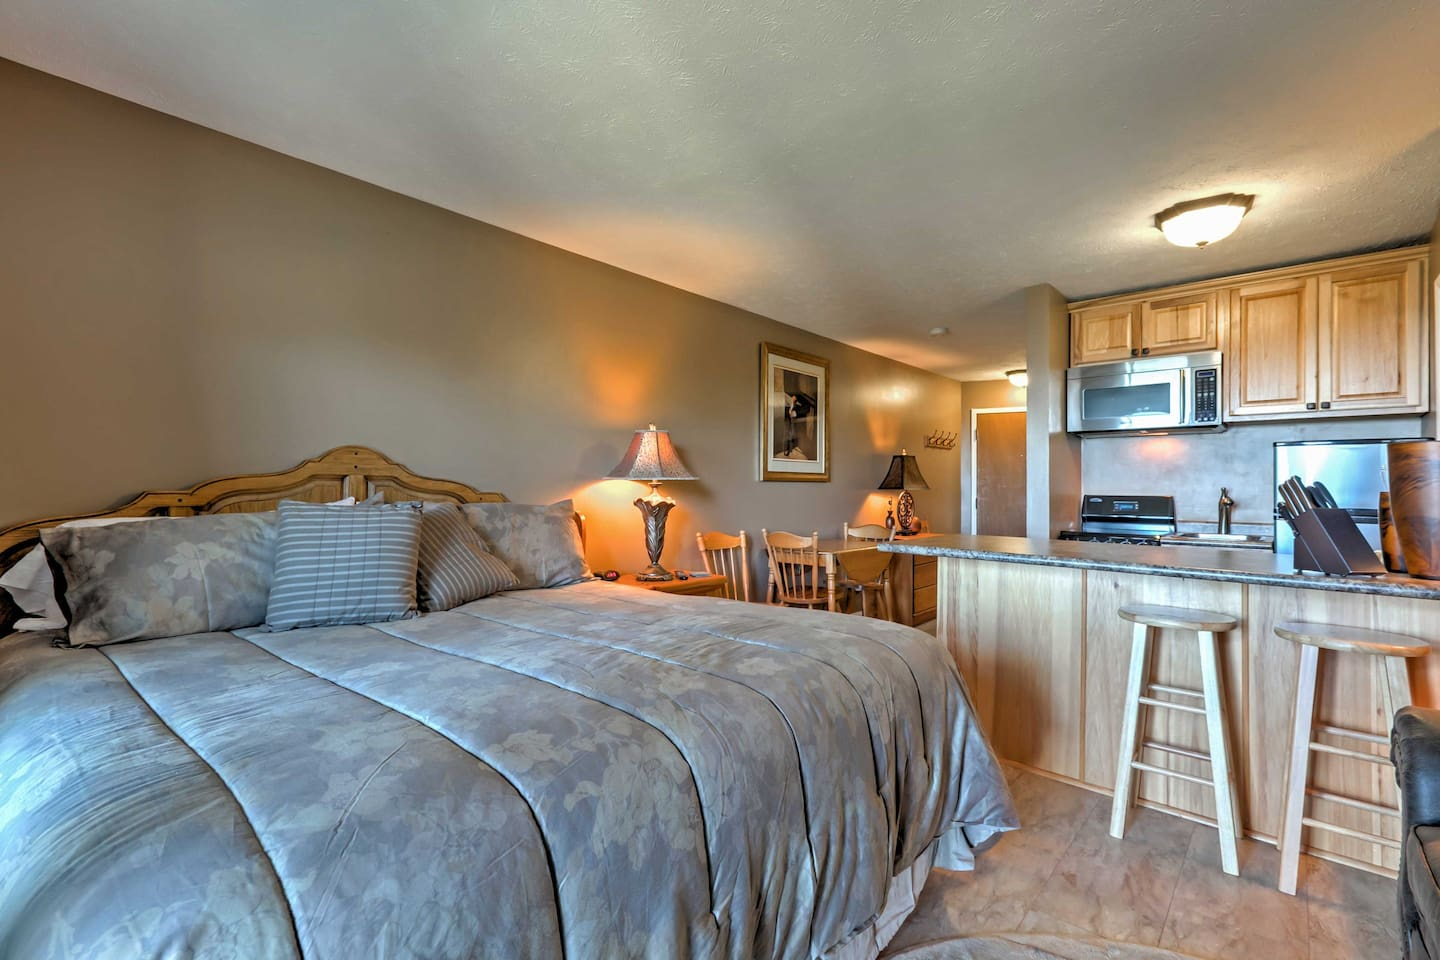 Inside, the modern studio for 2 has everything you need for a comfortable stay.